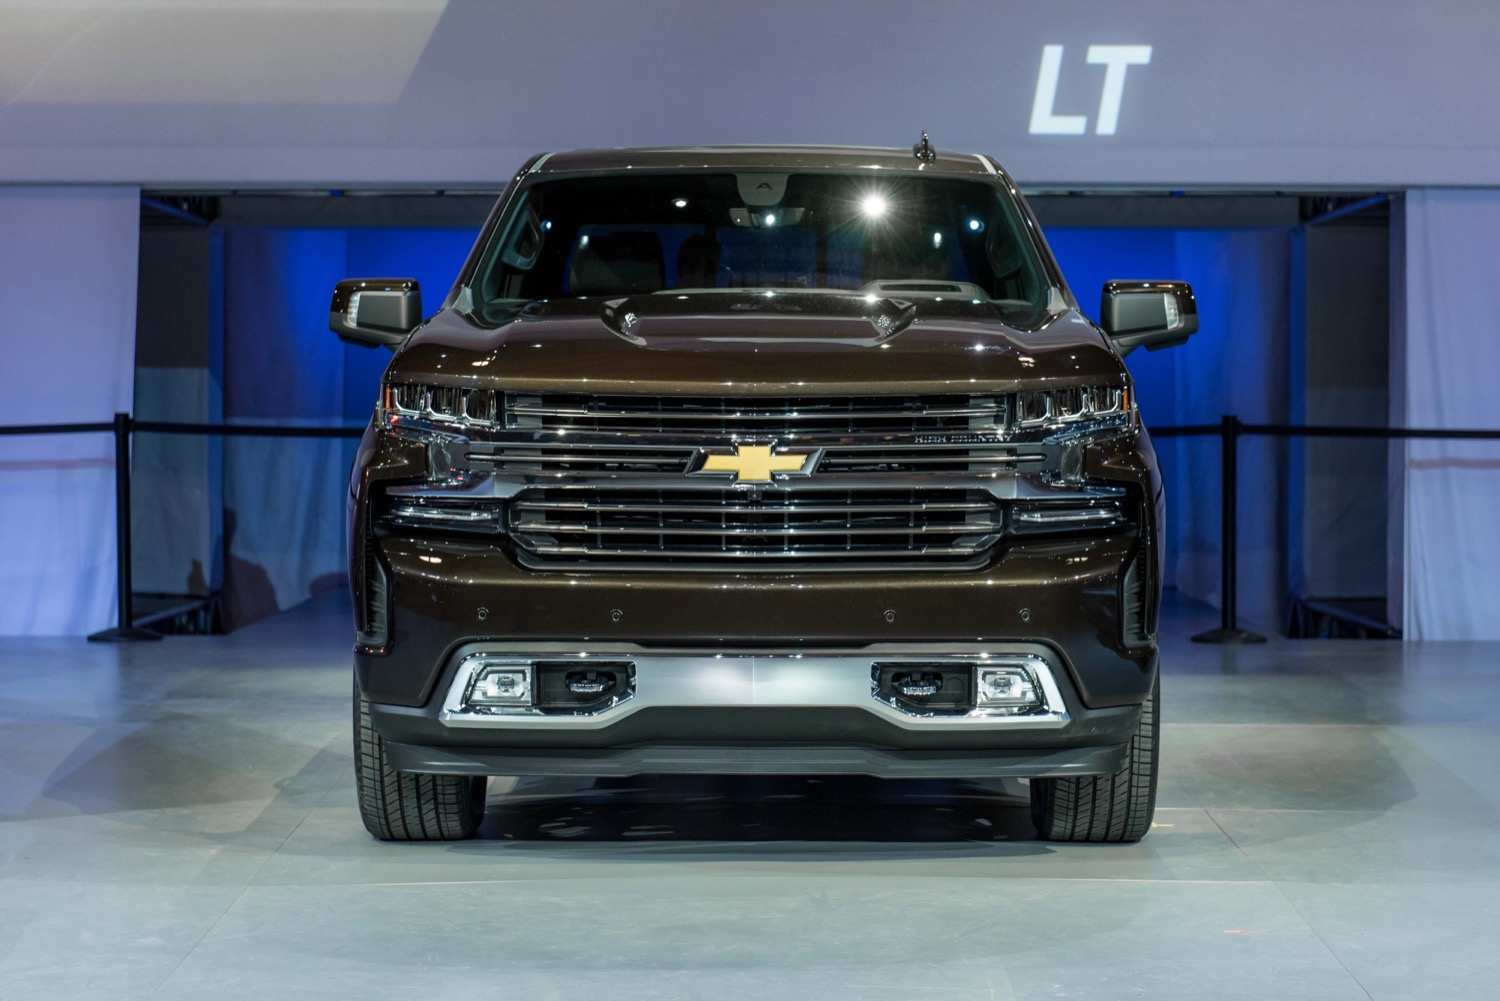 35 All New The 2019 Chevrolet Duramax Specs Price And Release Date Speed Test by The 2019 Chevrolet Duramax Specs Price And Release Date